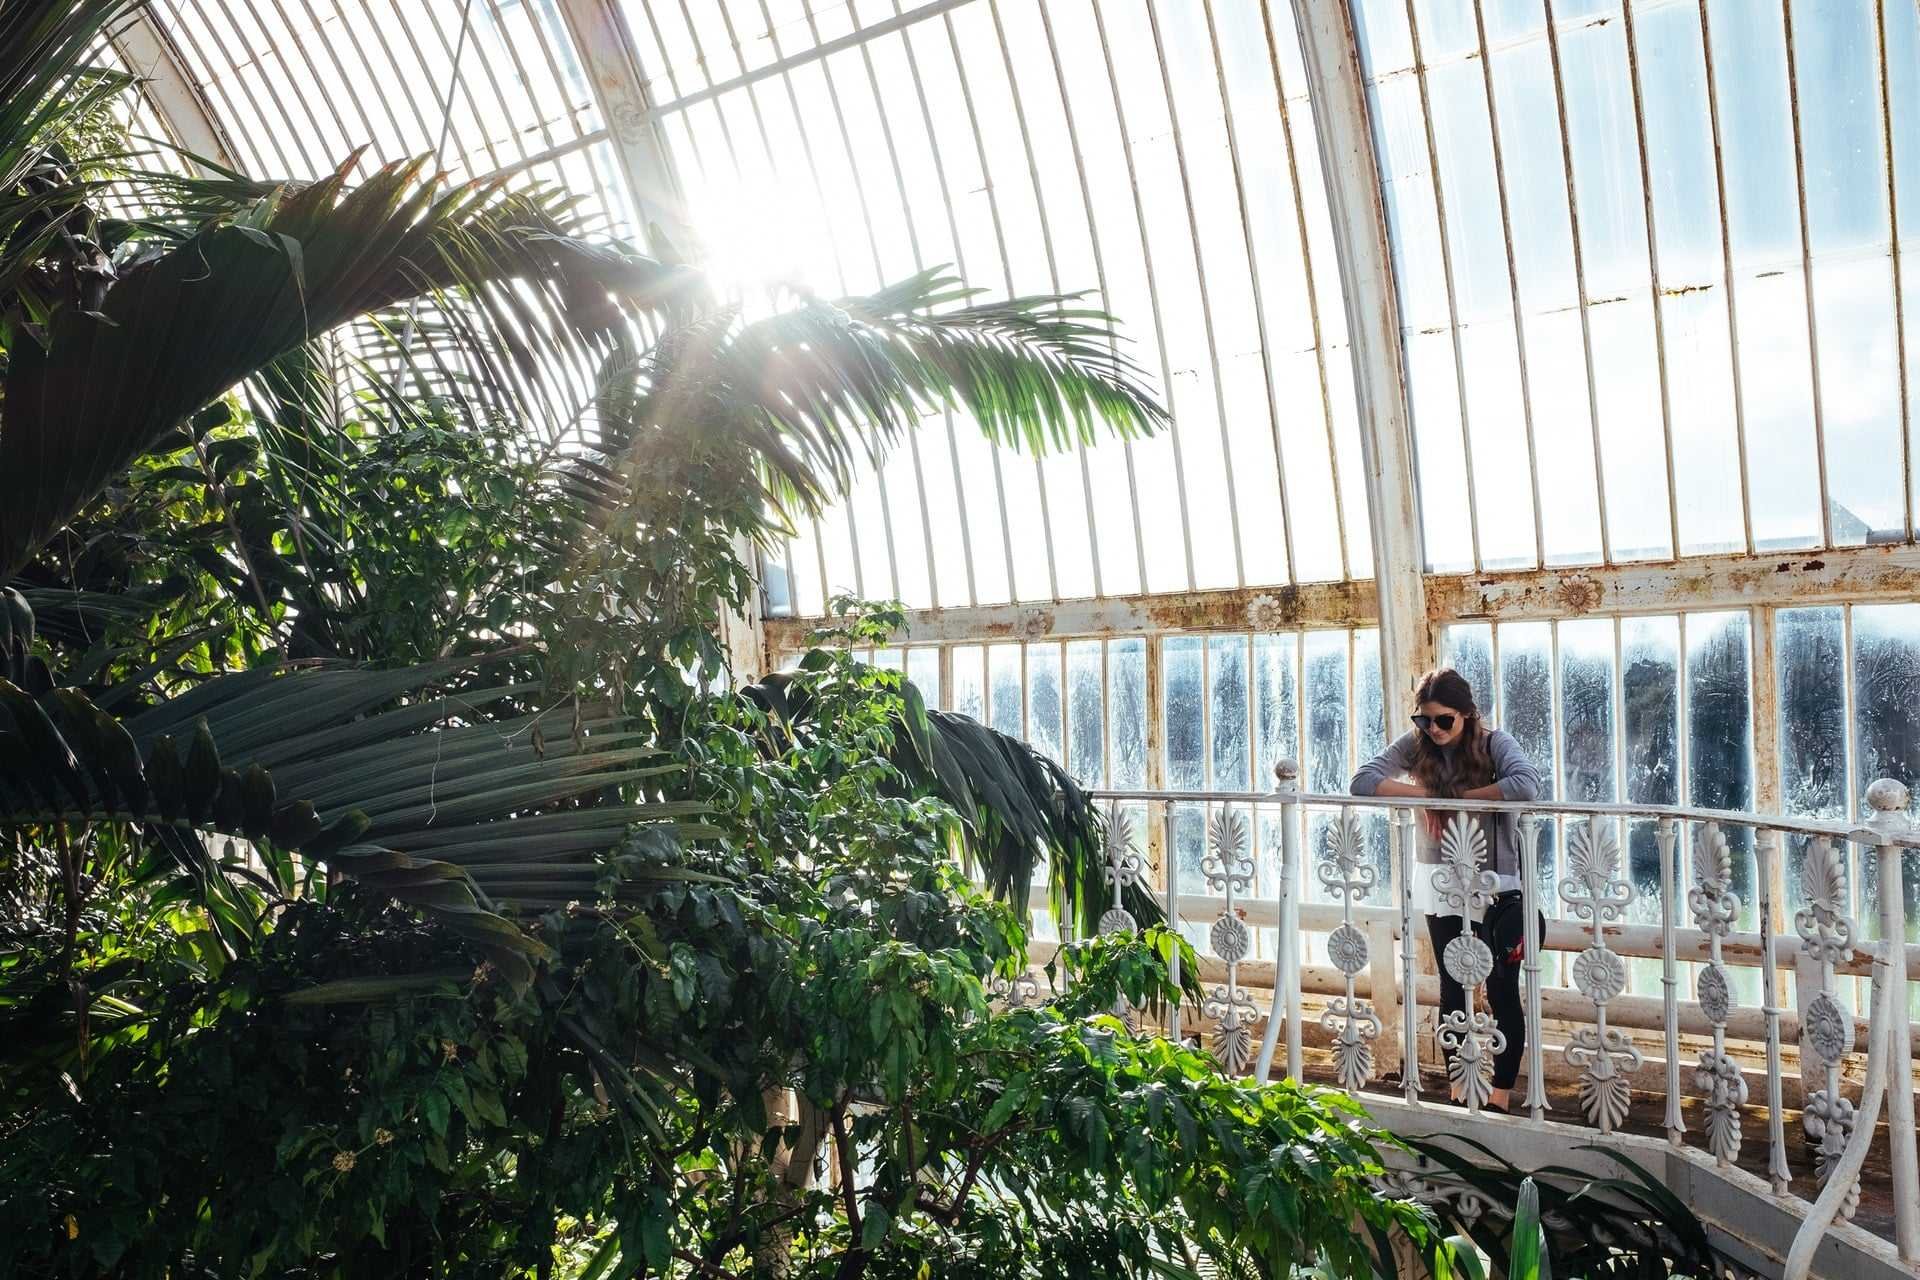 young-woman-standing-on-balcony-in-glasshouse-overlooking-tropical-plants-at-kew-gardens-in-richmond